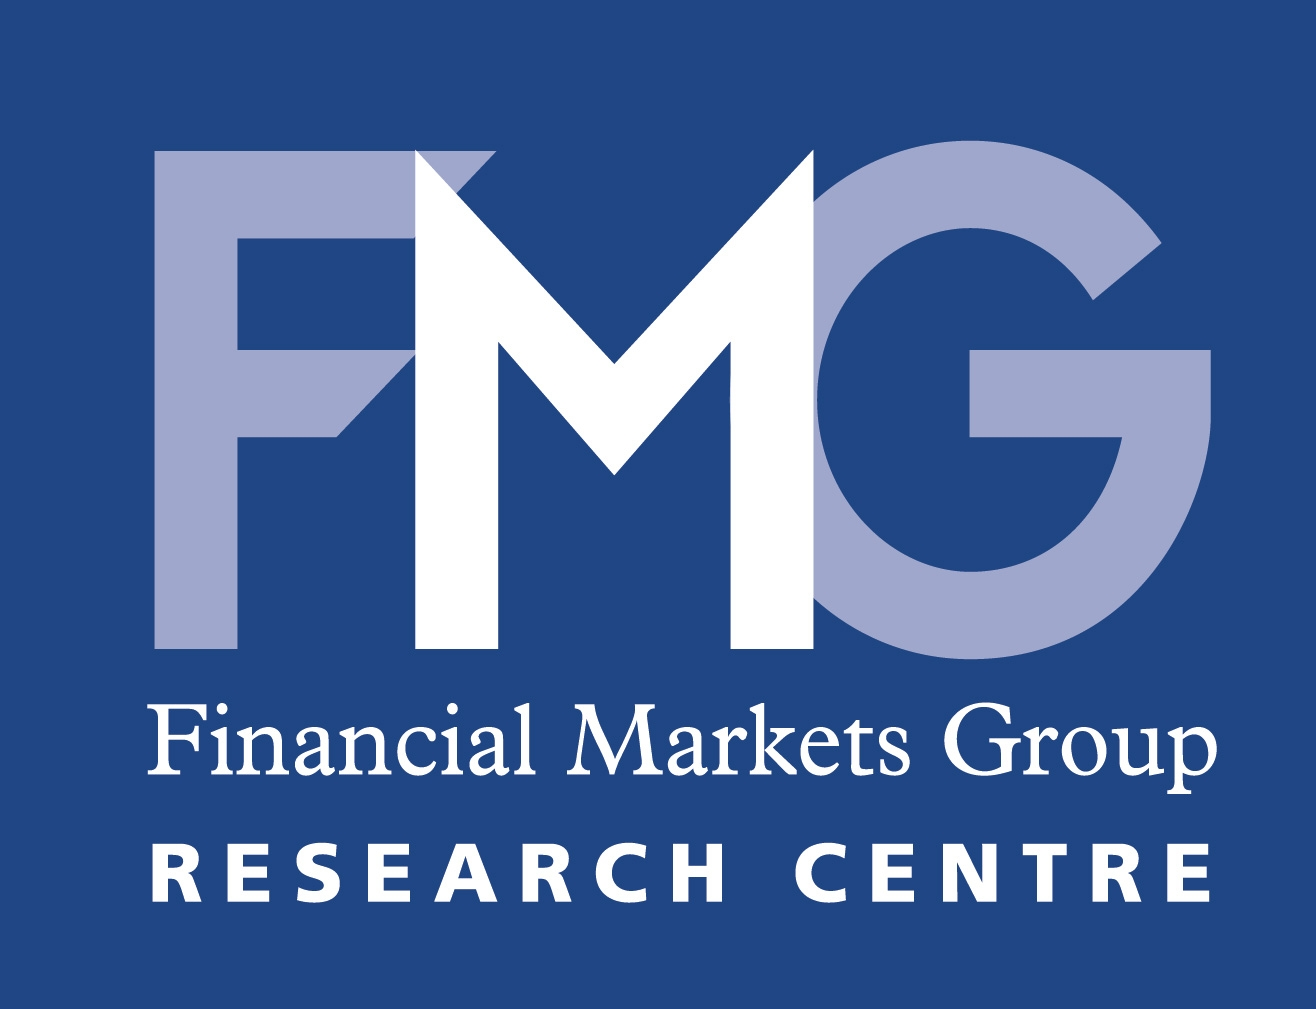 LSE's Financial Markets Group